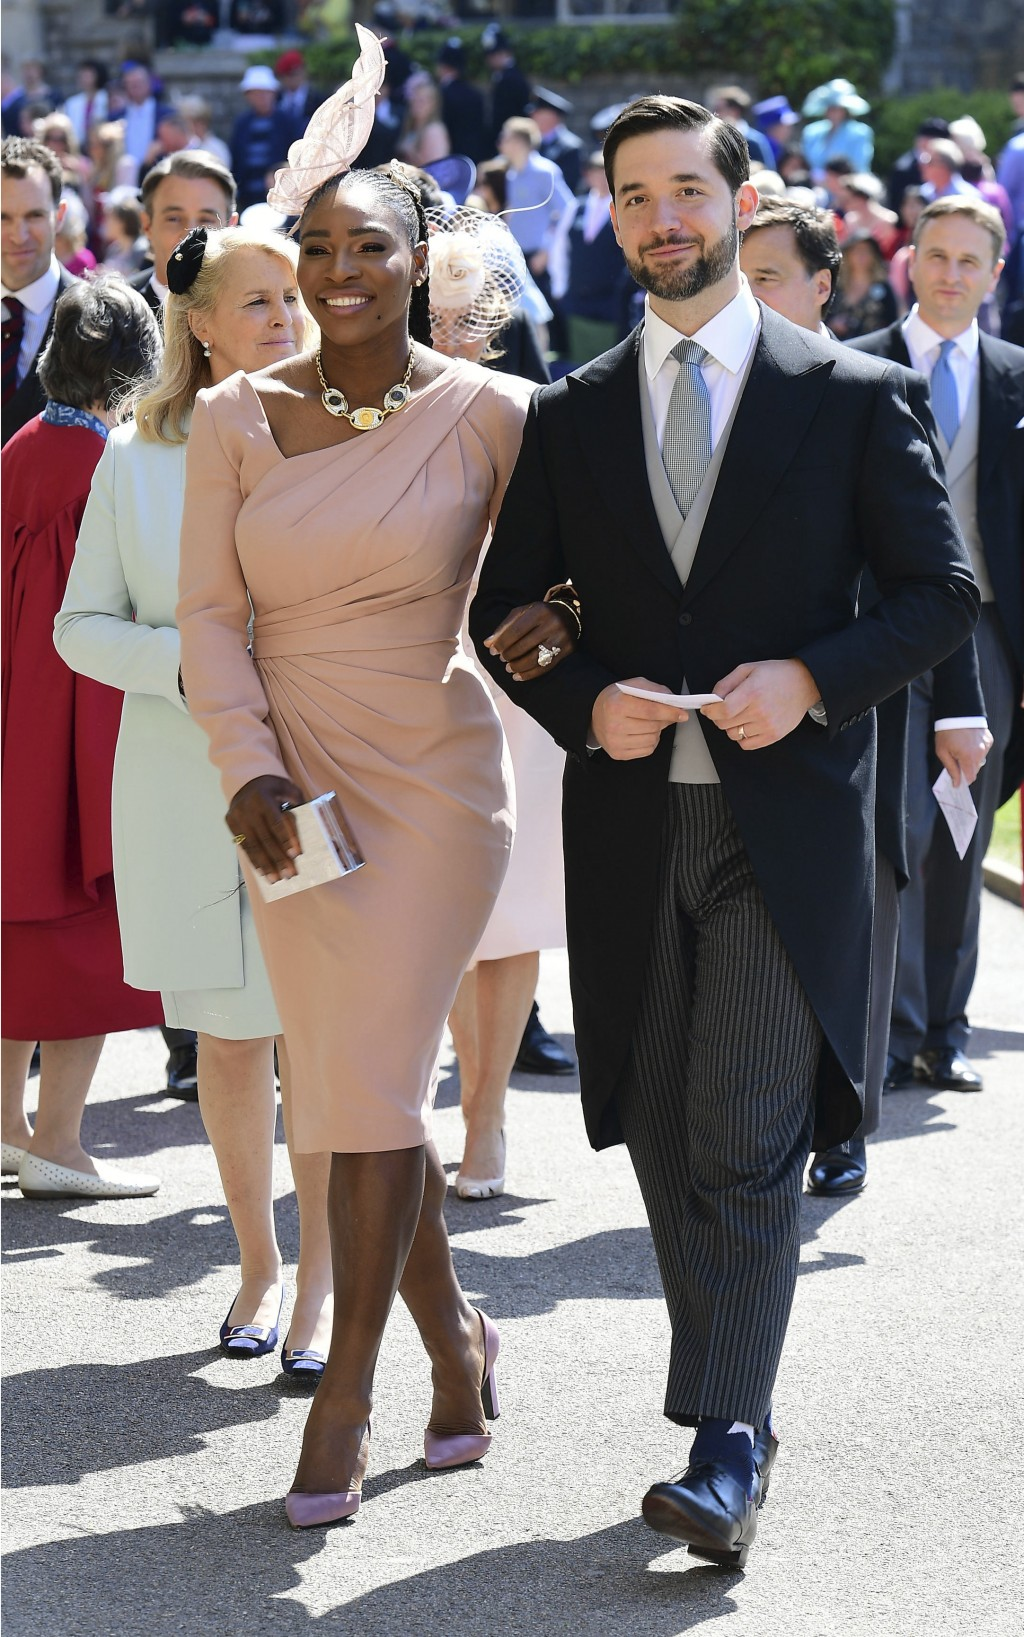 FILE - In this May 19, 2018, file photo, Serena Williams and her husband Alexis Ohanian arrive for the wedding ceremony of Prince Harry and Meghan Mar...